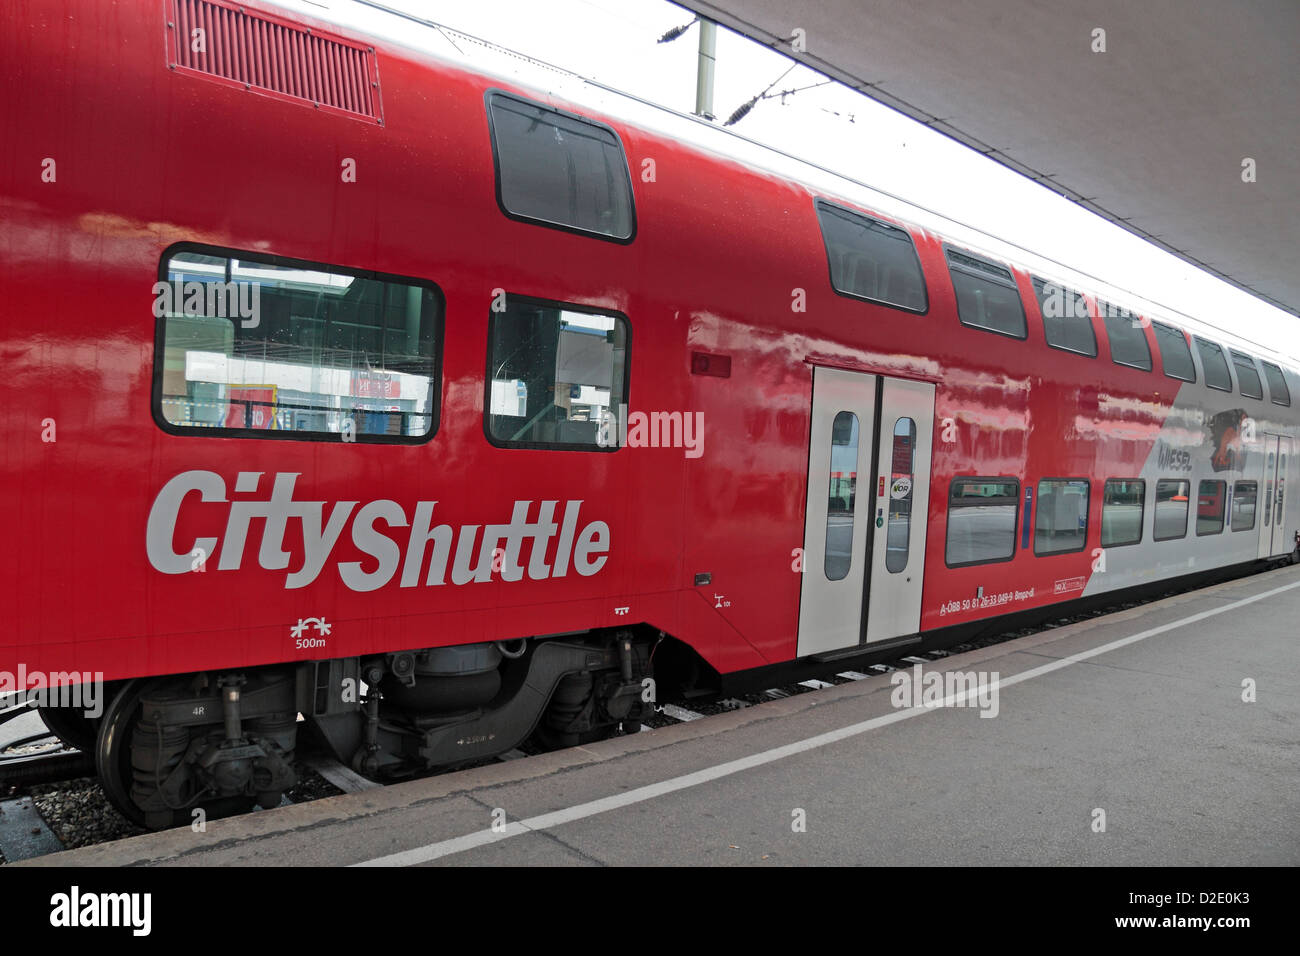 A City Shuttle train on the Austrian Federal Railways, on the side of a train in Vienna, Austria. - Stock Image